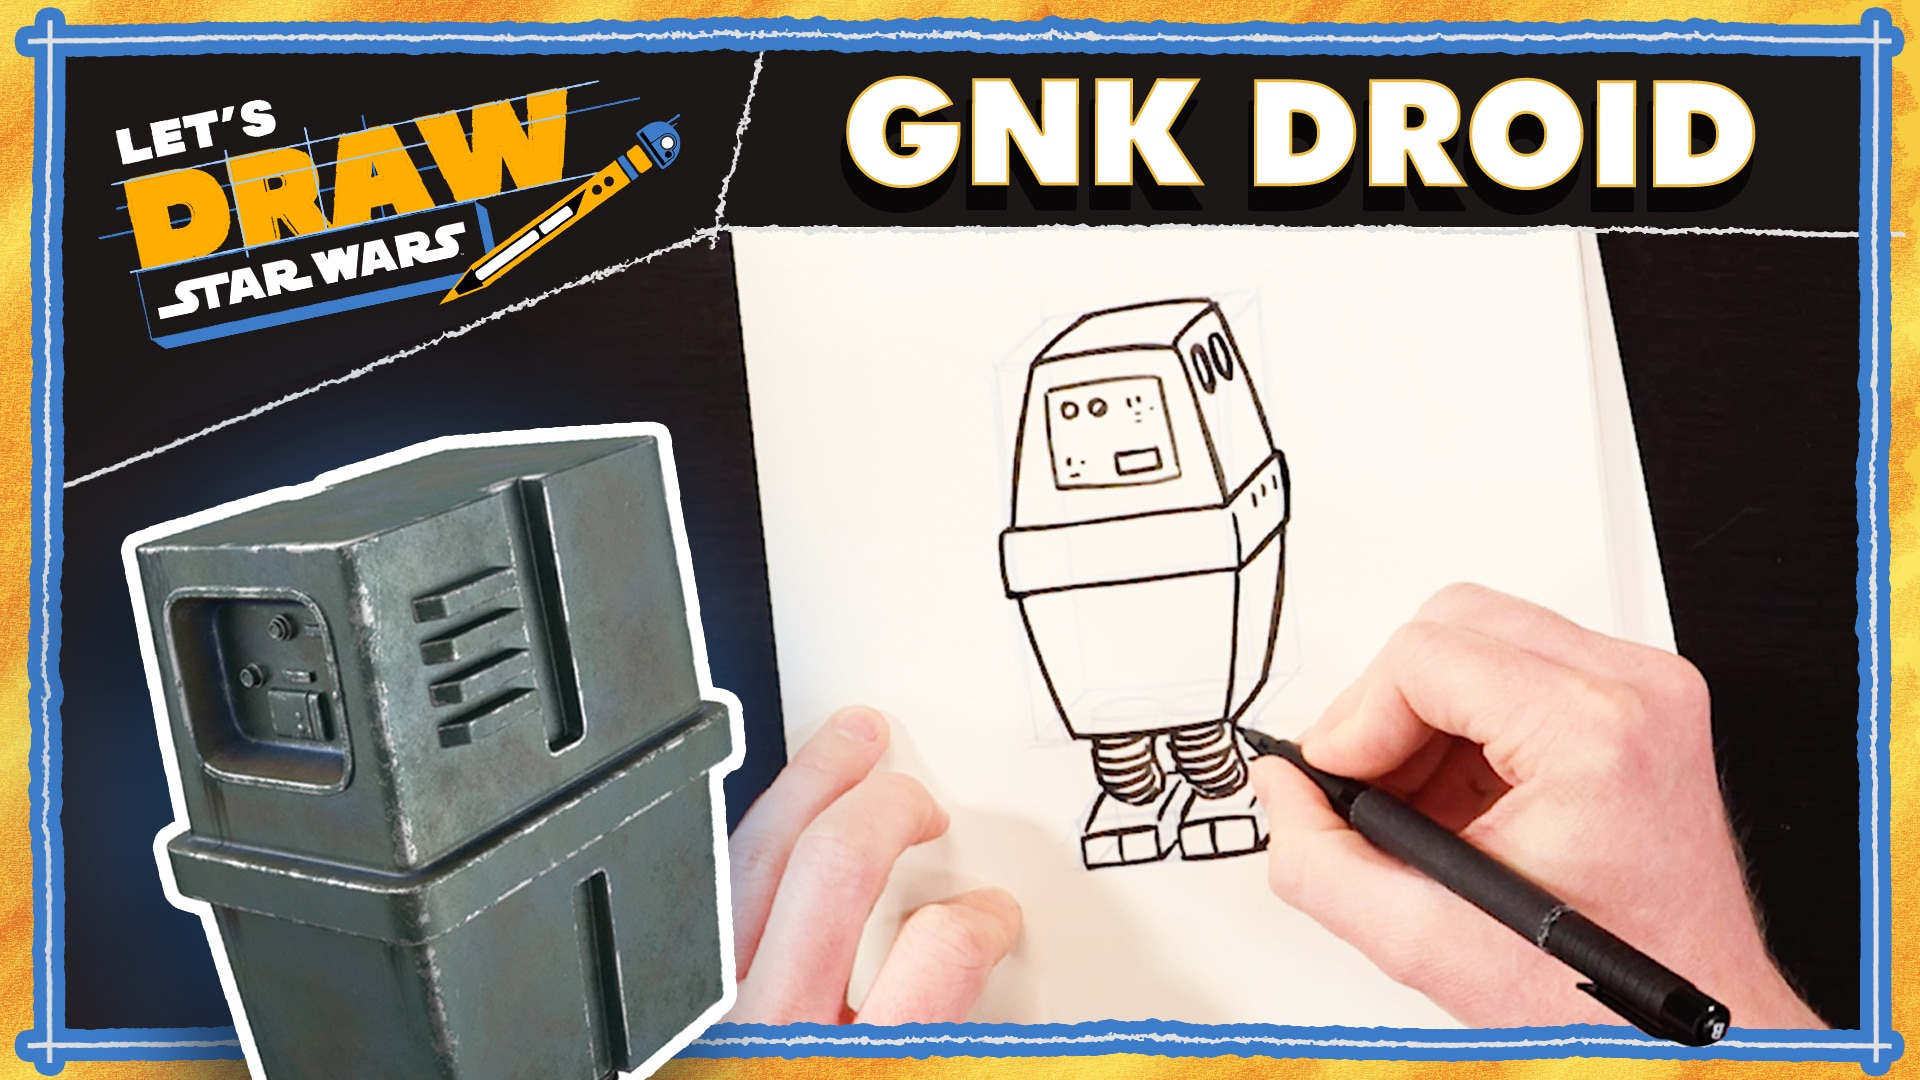 Jedi Holocron & Gonk Droid Tutorial | Let's Draw Star Wars